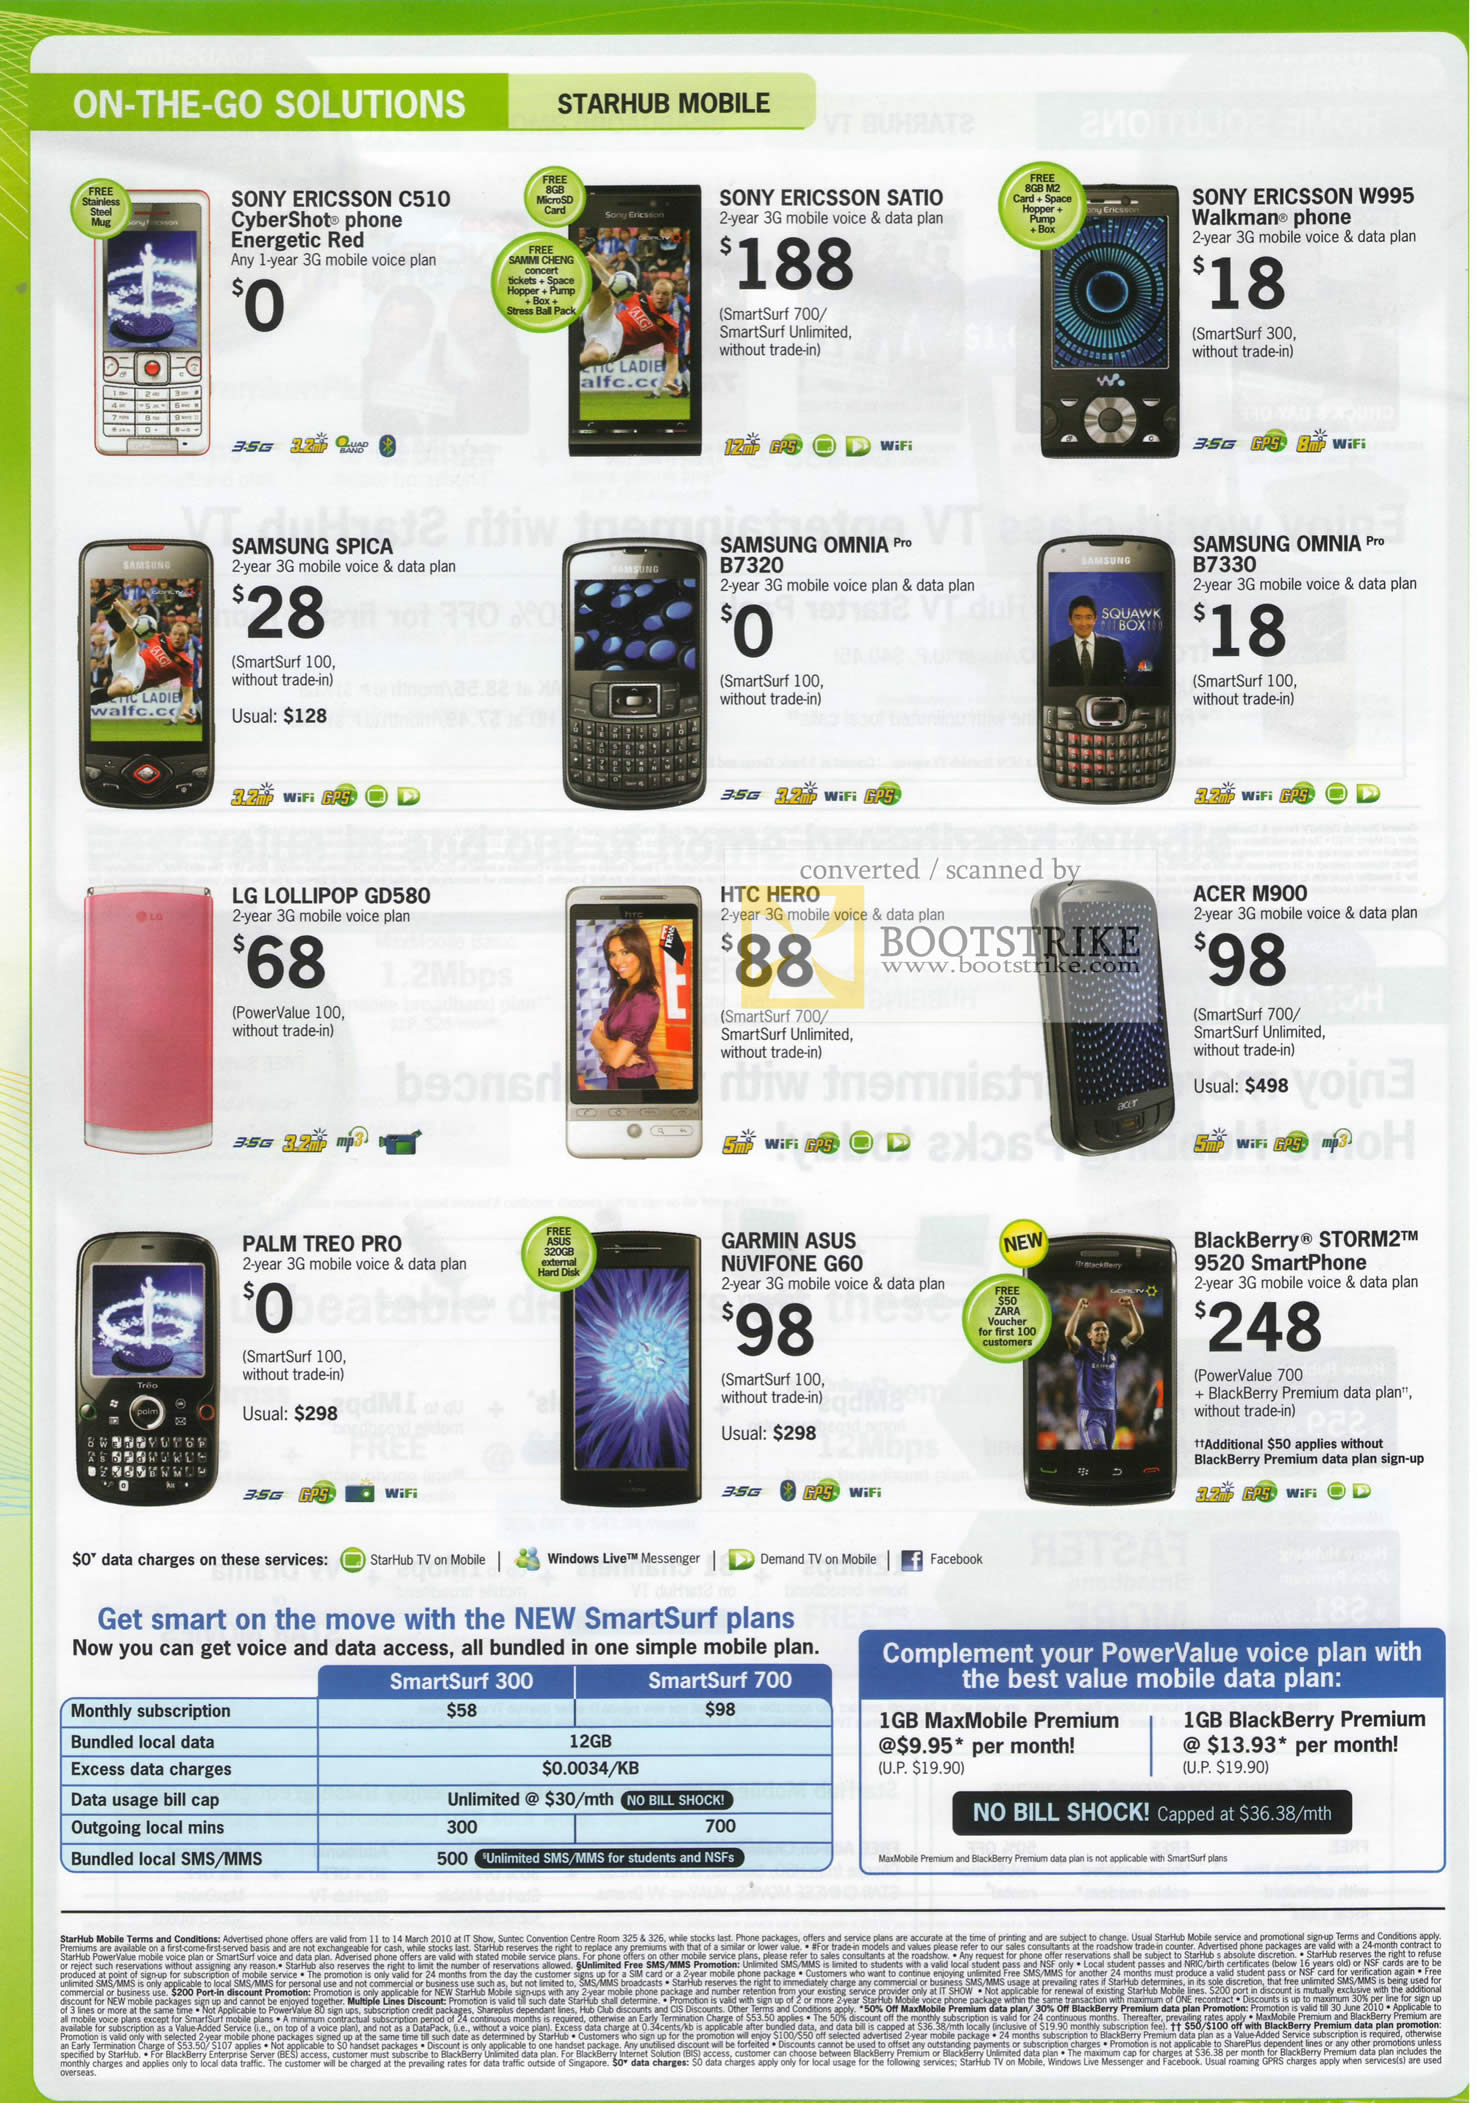 Sony ericsson mobile pictures price list 25 Hairstyles To Slim Down Round Faces - StyleCraze